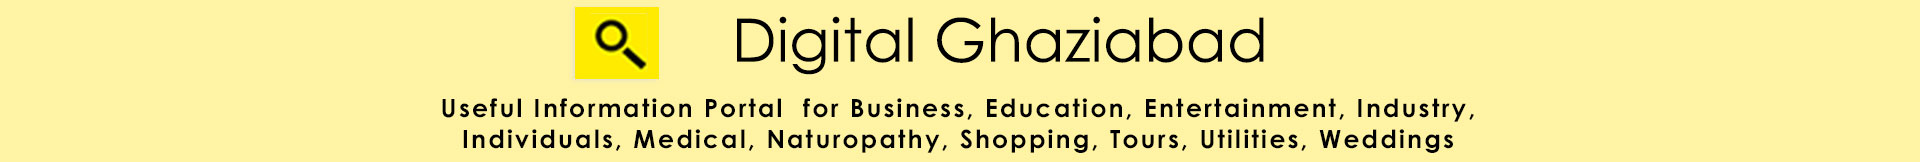 Useful Digital Ghaziabad